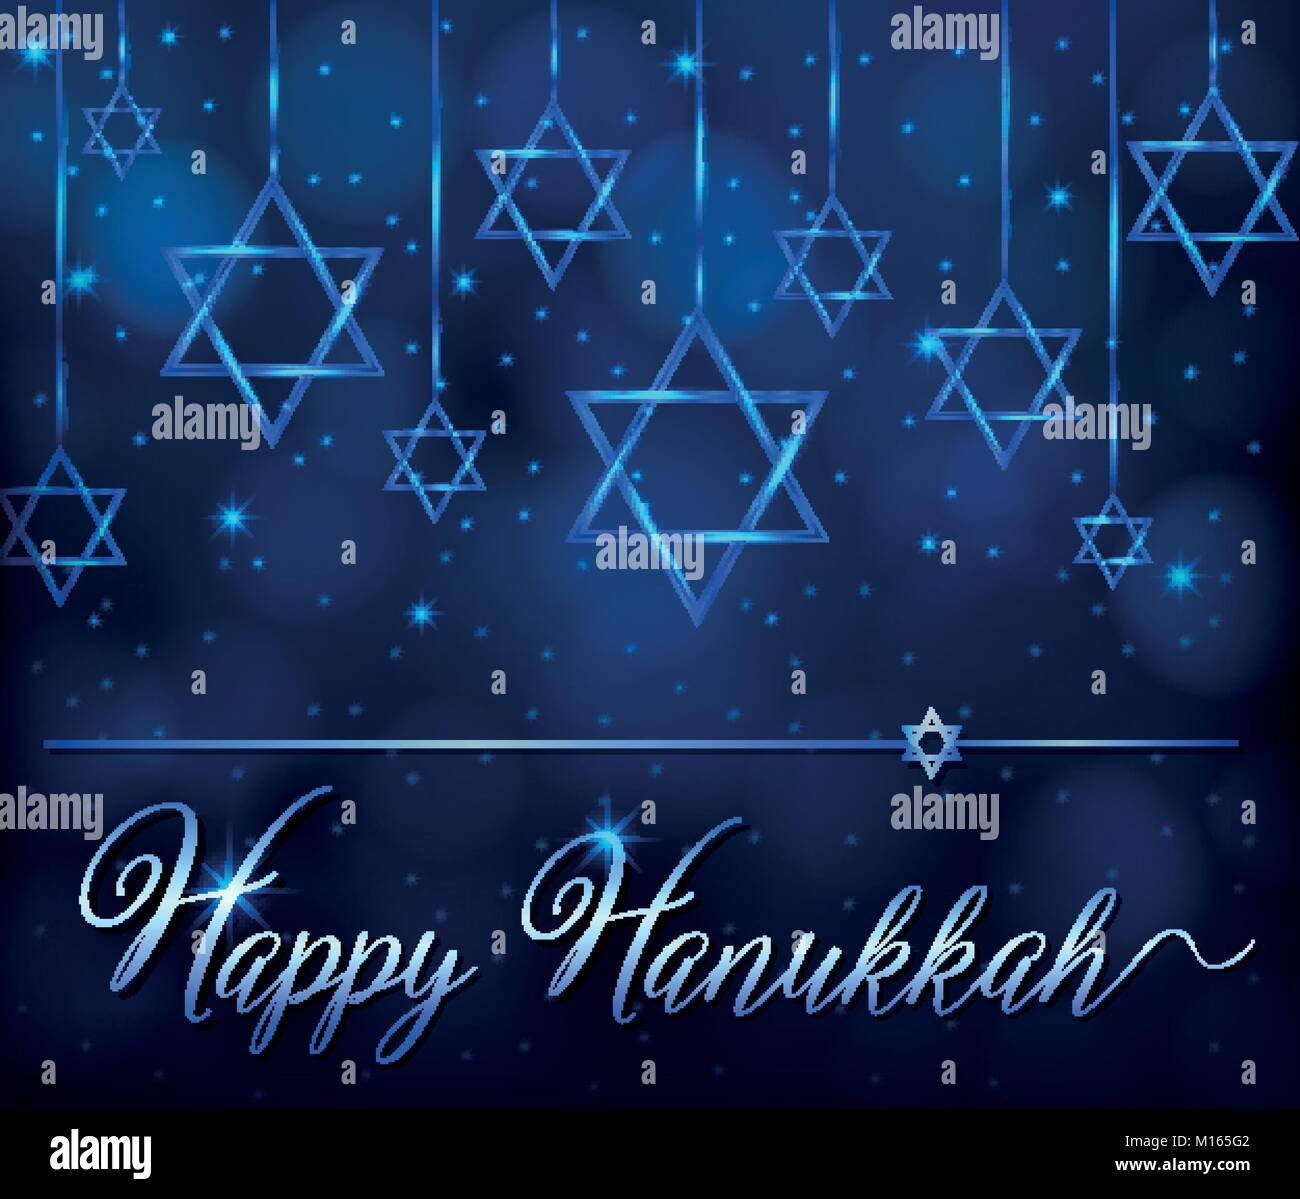 Happy hanukkah card template with blue star symbol illustration - Stock Vector